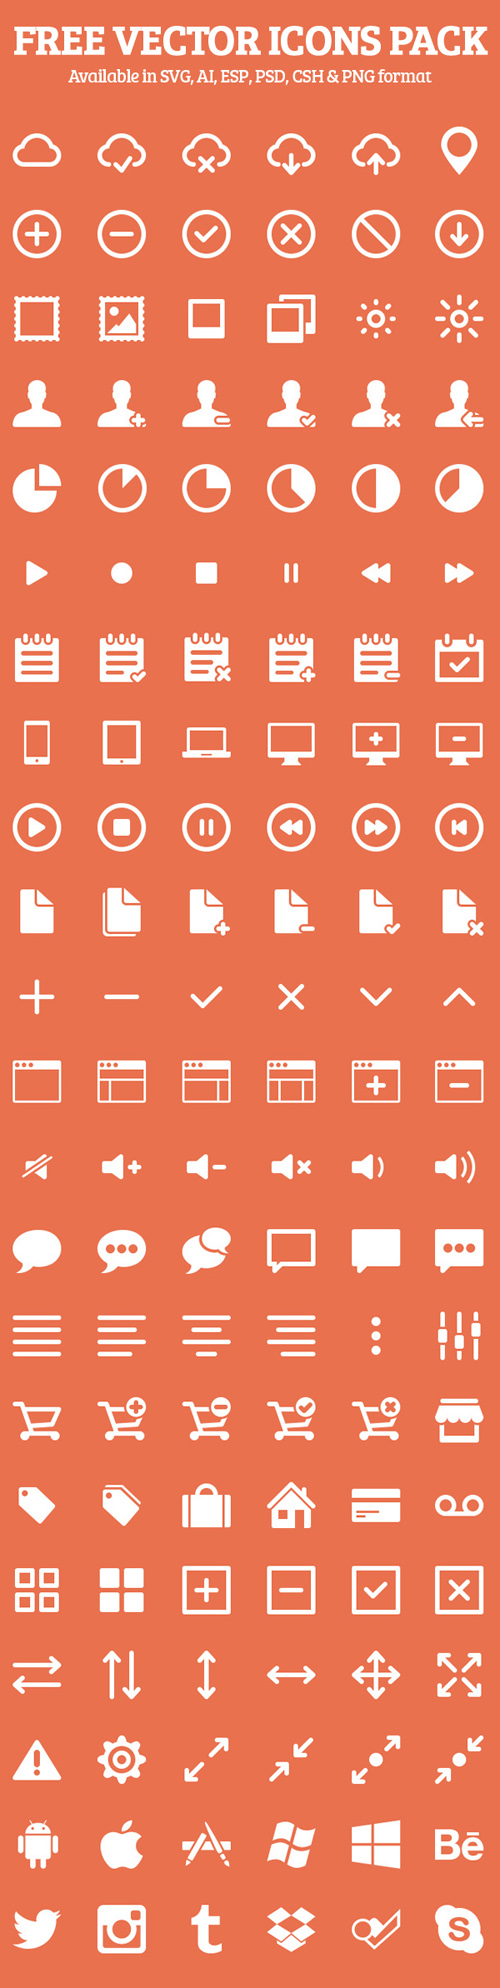 250+ Free Vector Icons Pack